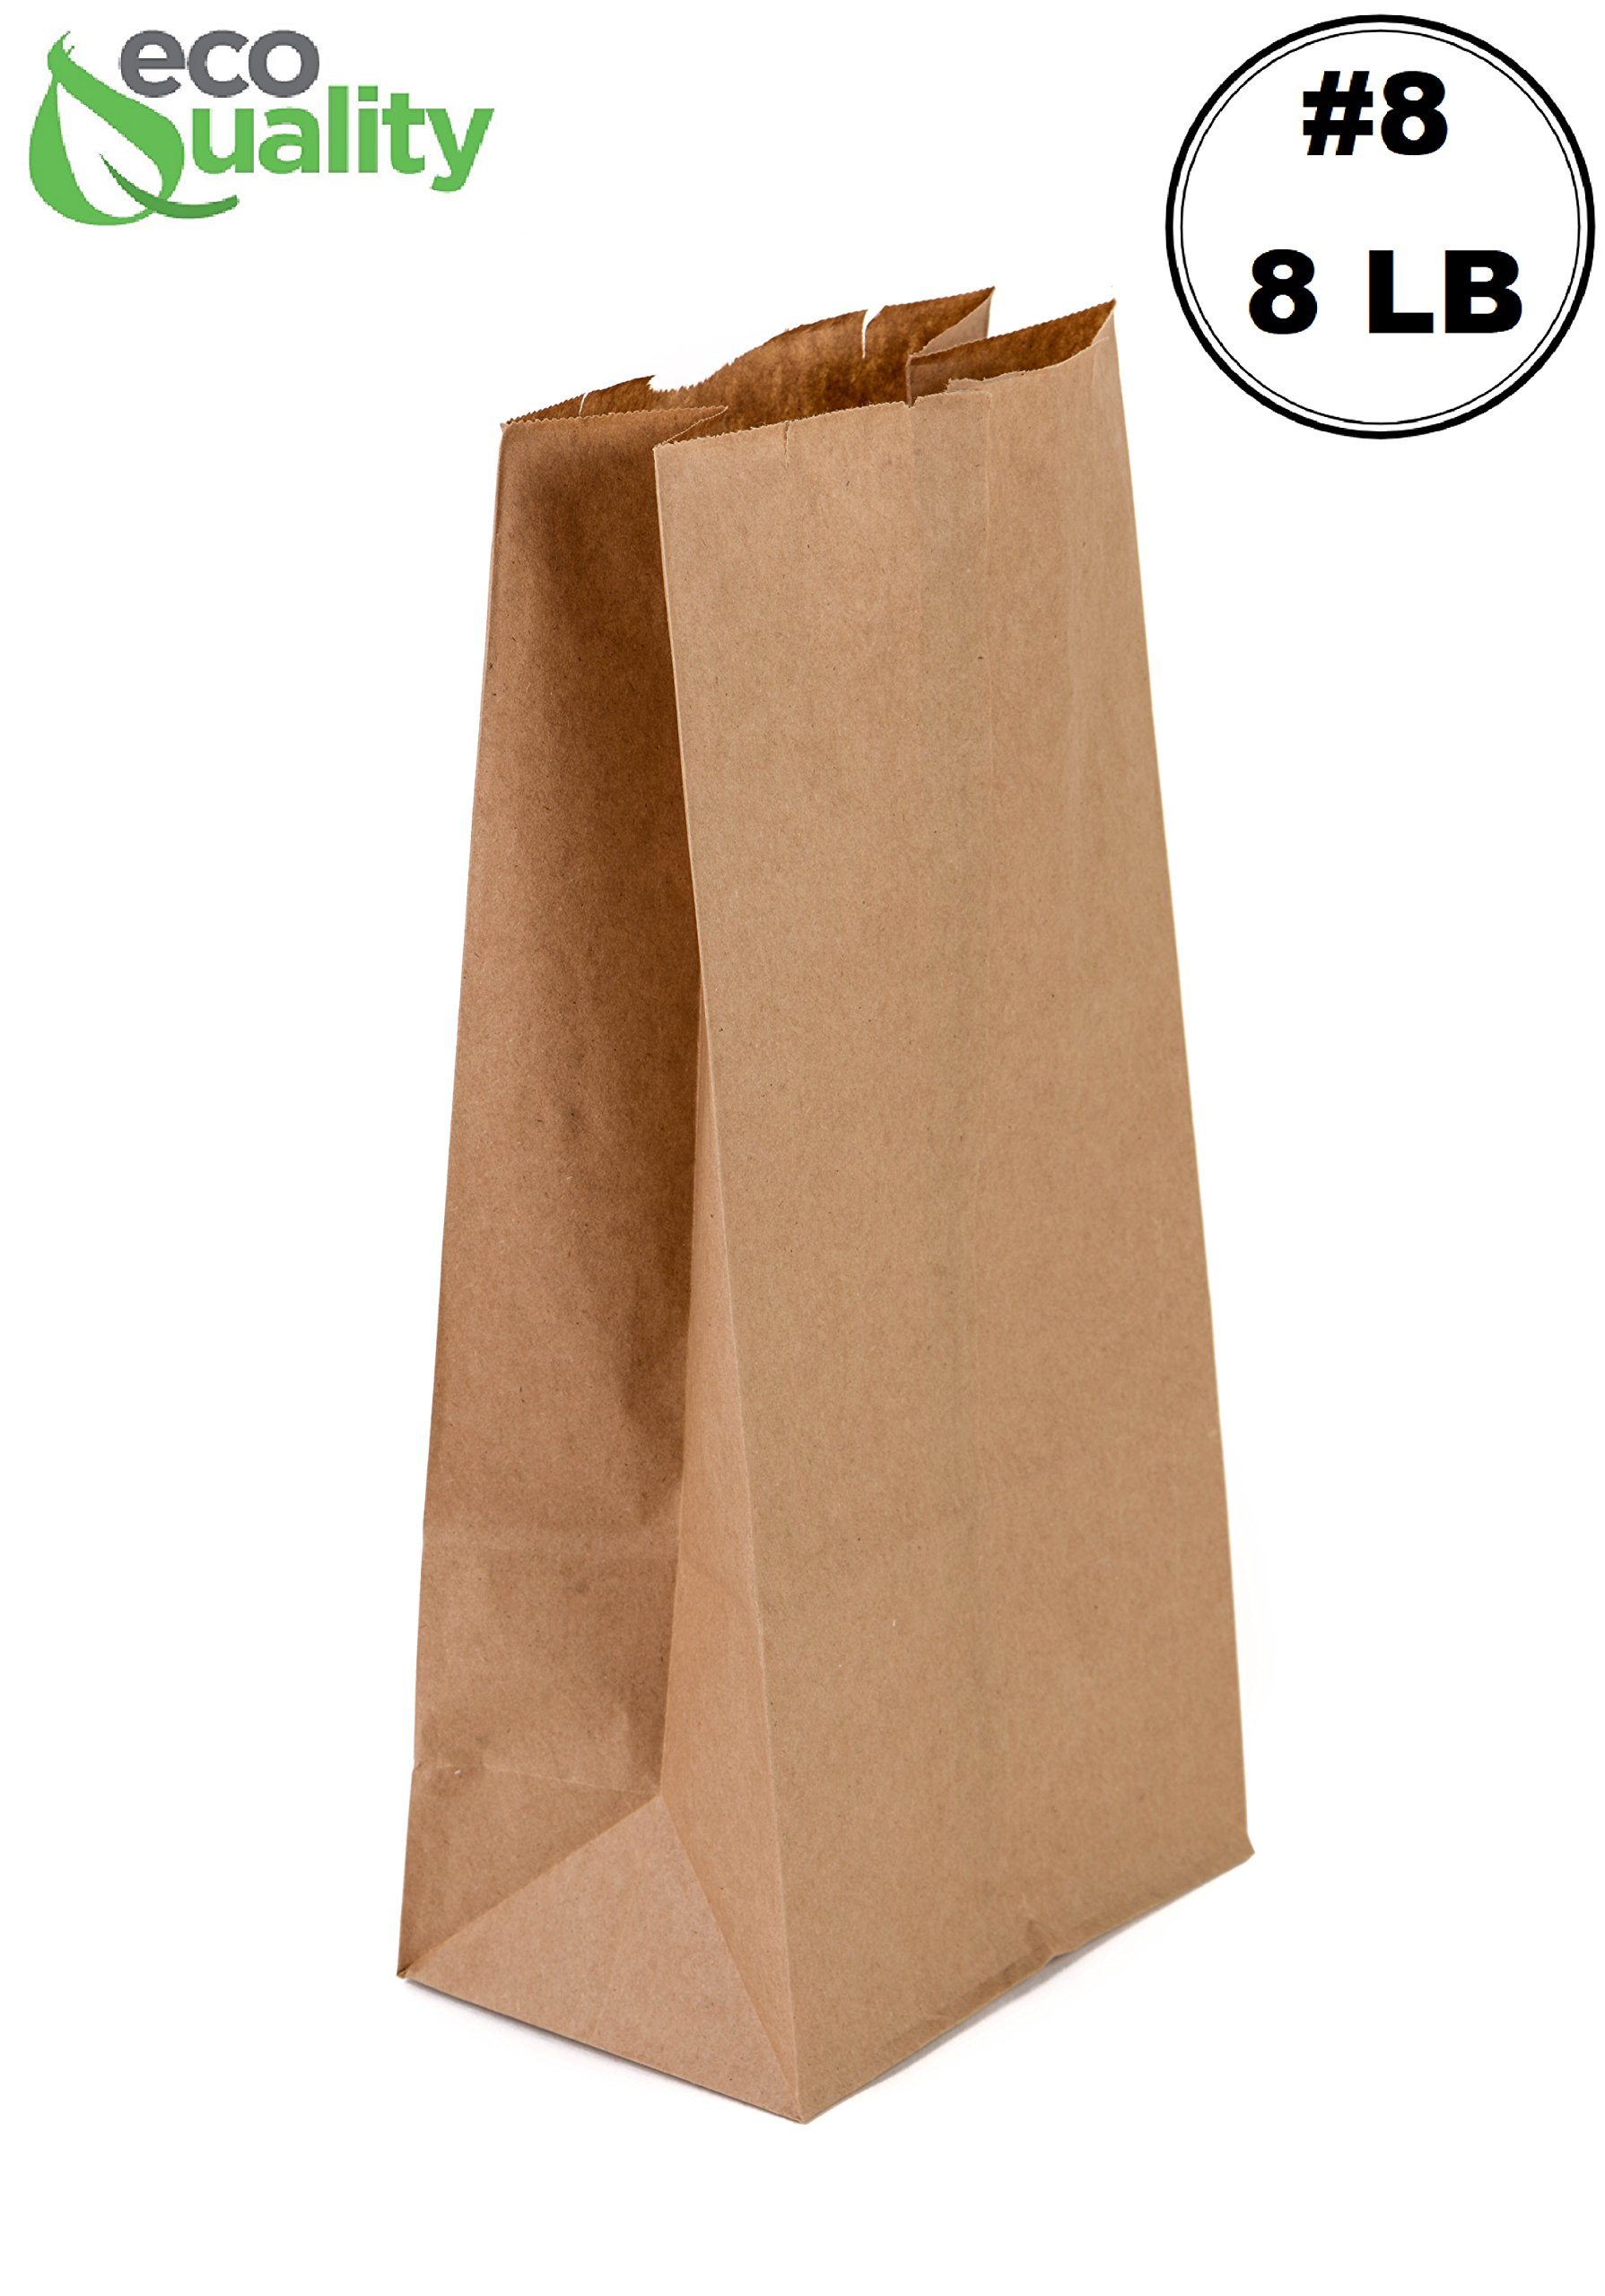 EcoQuality 1000 Brown Kraft Paper Bag (8 lb) Small - Paper Lunch Bags, Small Snacks, Gift Bags, Grocery, Merchandise, Party Bags (6 1/8'' x 4 1/8'' x 12 7/16'') (8 Pound Capacity)